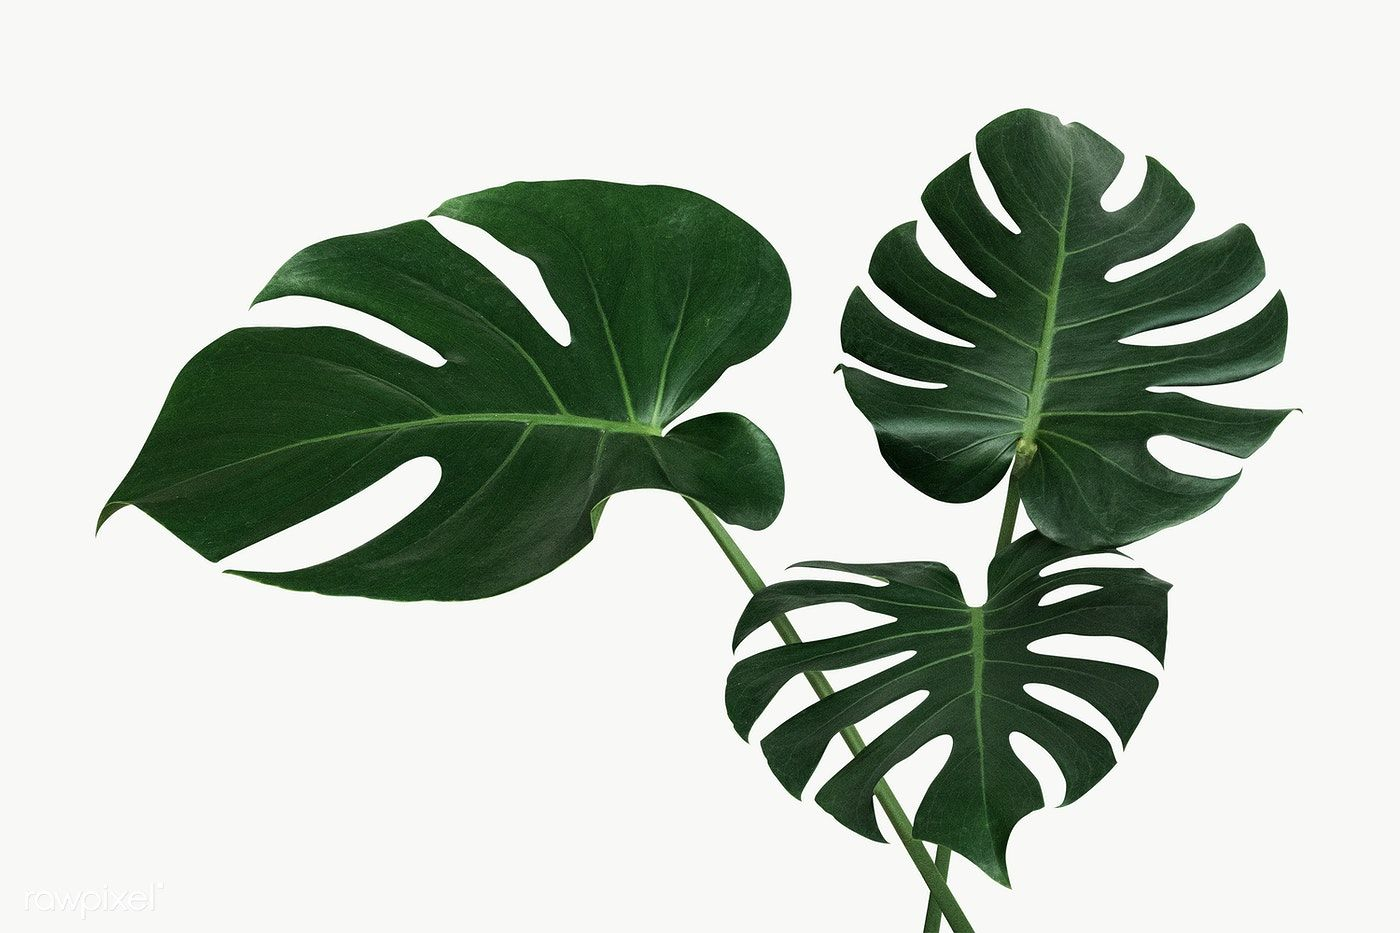 Split Leaf Philodendron Monstera Plant Element Transparent Png Free Image By Rawpixel Com Jira Plant Leaves Monstera Philodendron